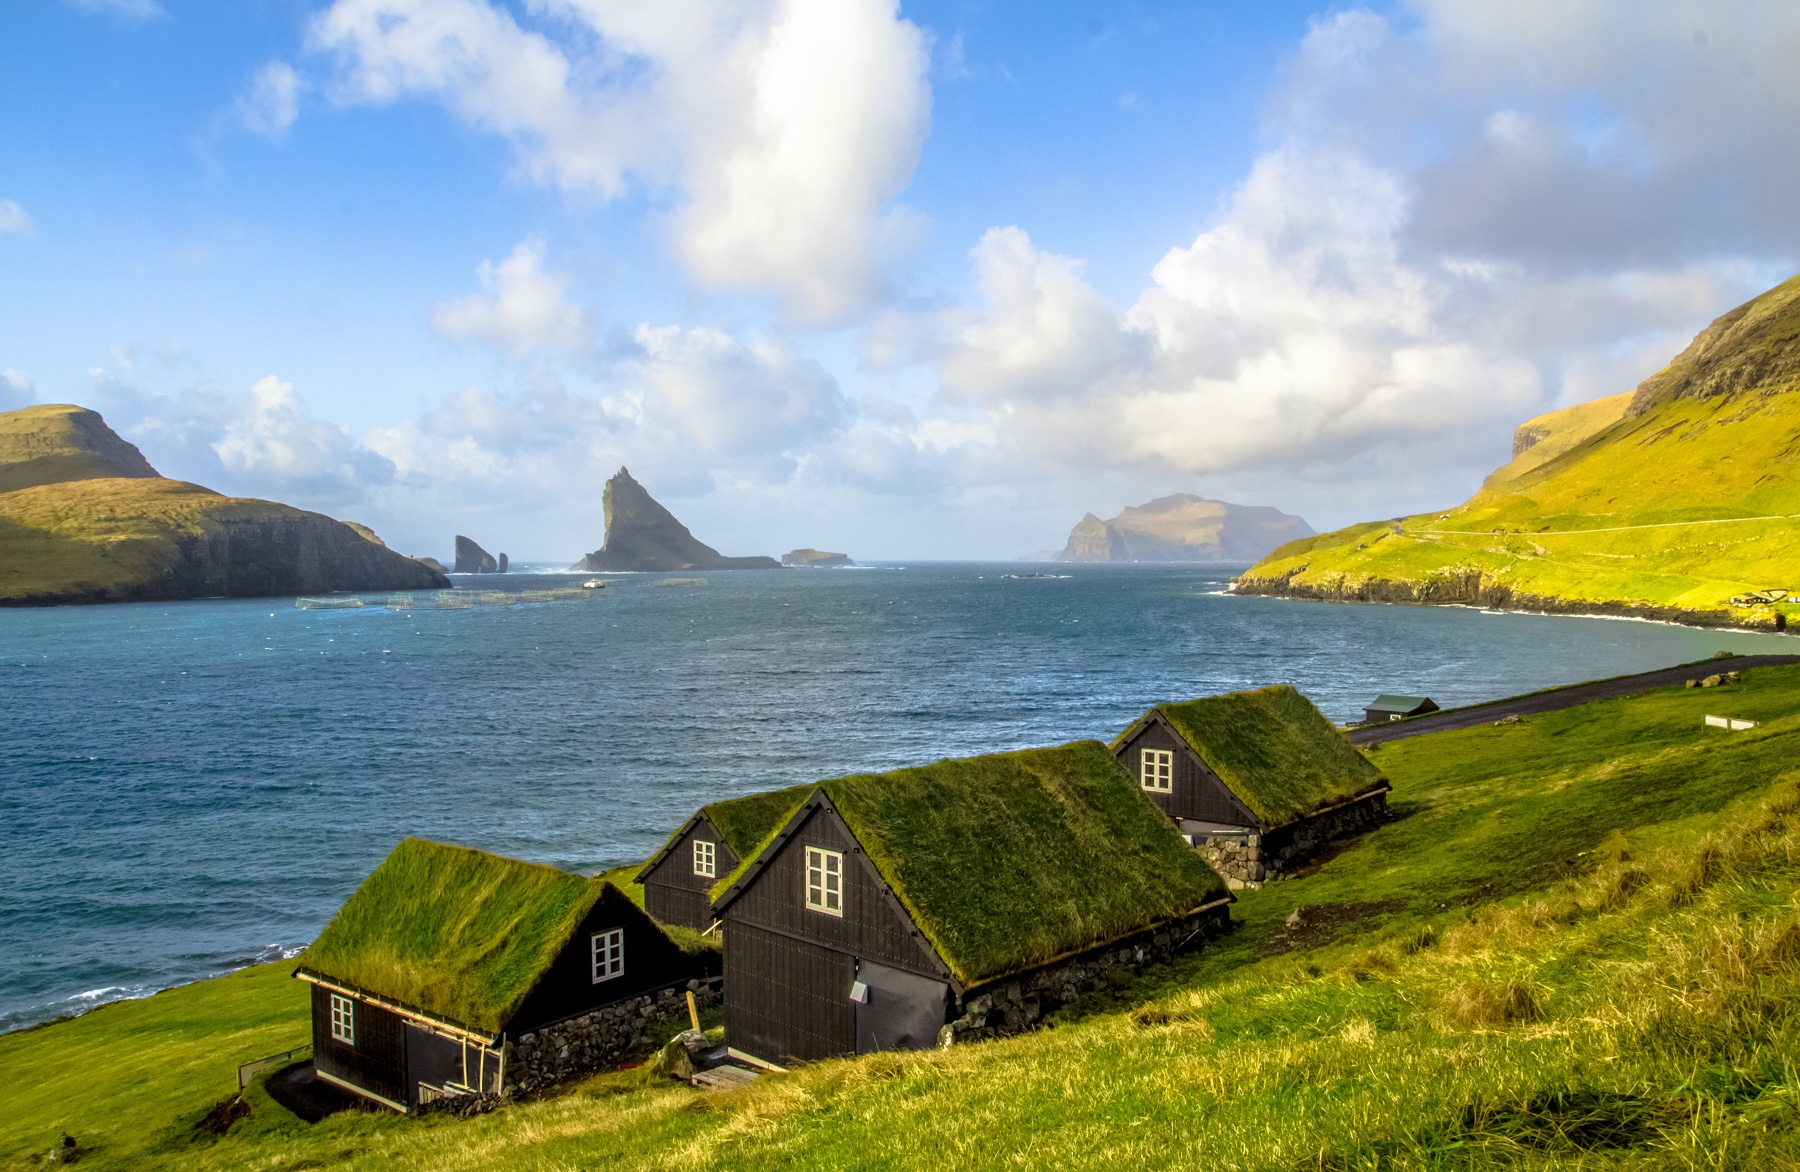 Isole Faroe - Faroe Islands